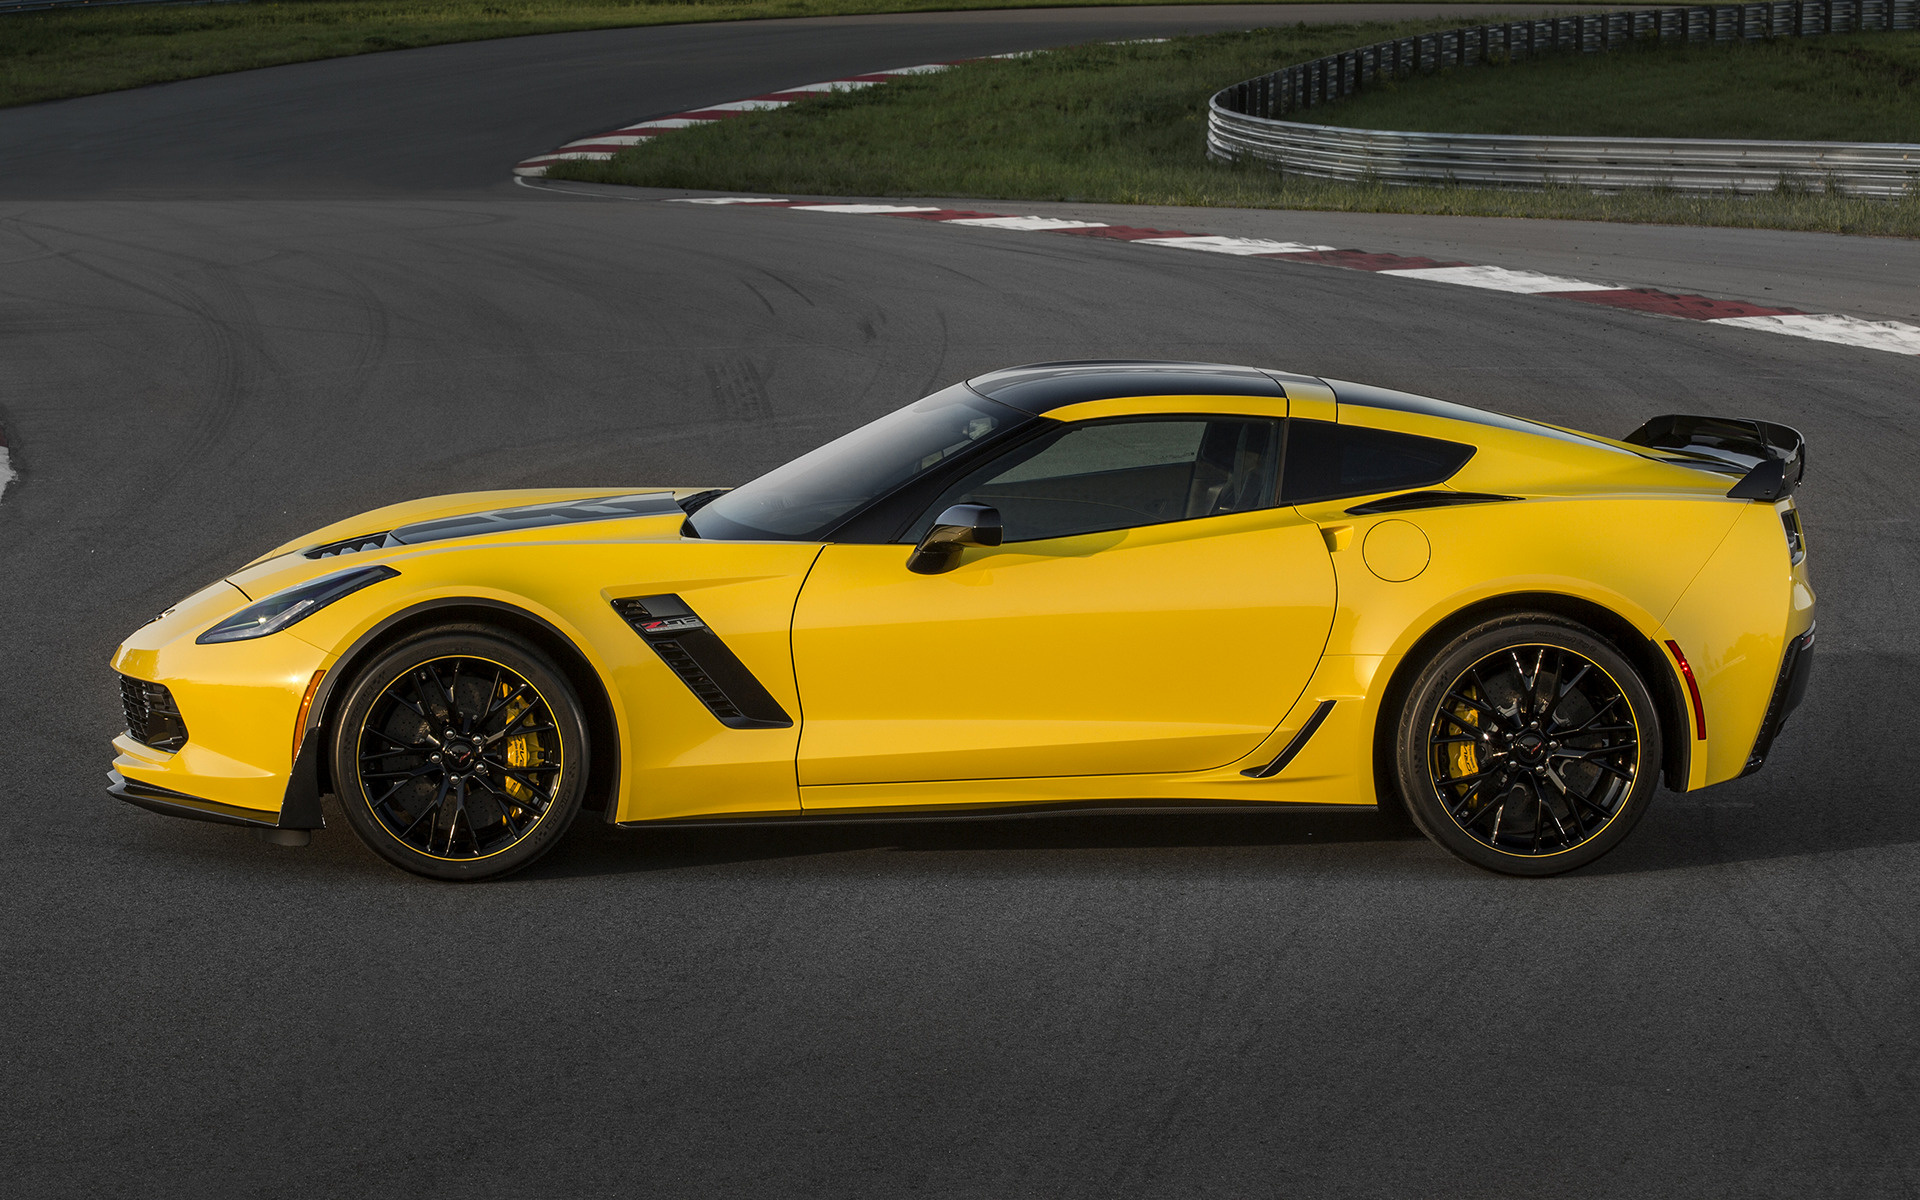 2016 Hyundai Genesis Coupe >> 2016 Chevrolet Corvette Z06 C7.R Edition Coupe ...